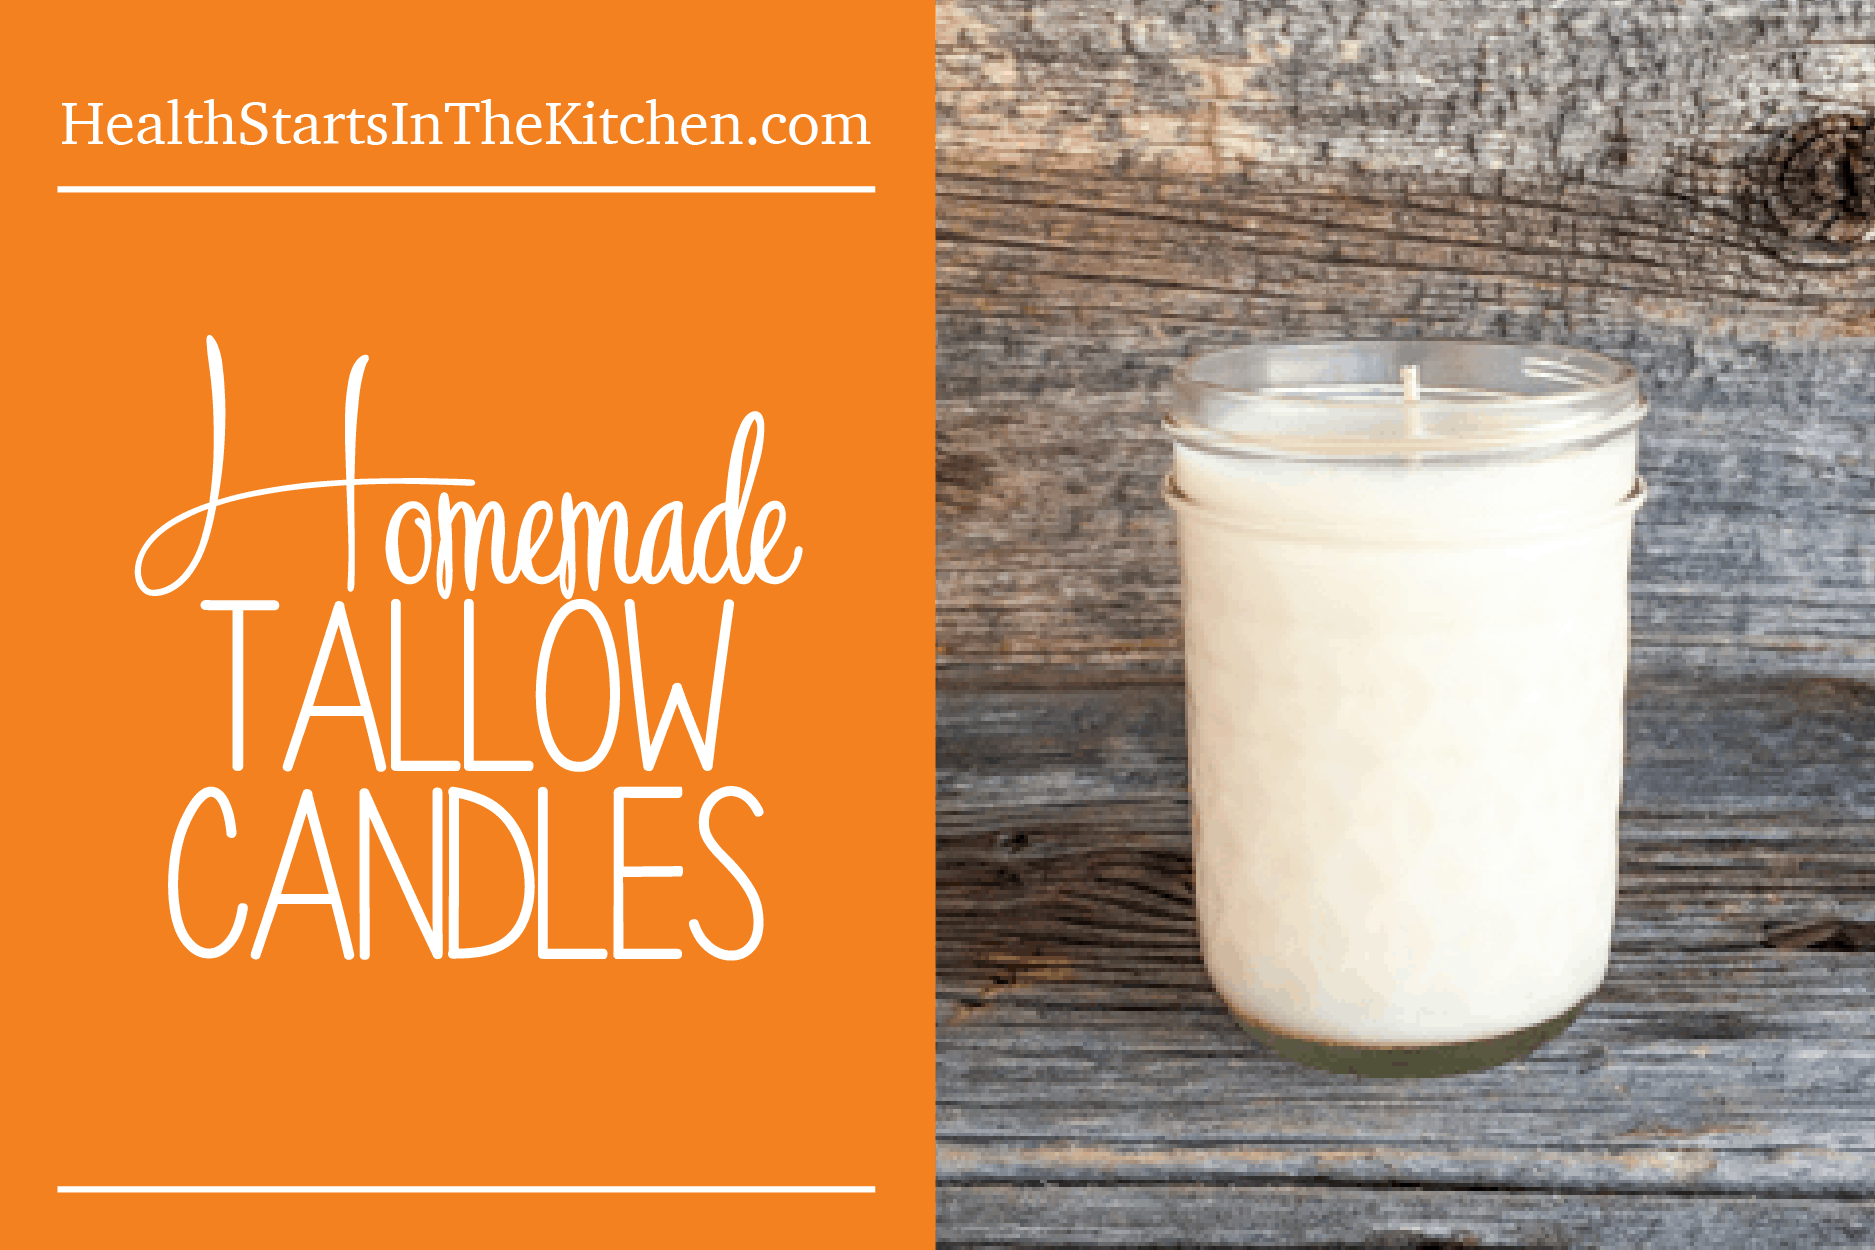 Homemade Tallow Candles - Health Starts in the Kitchen